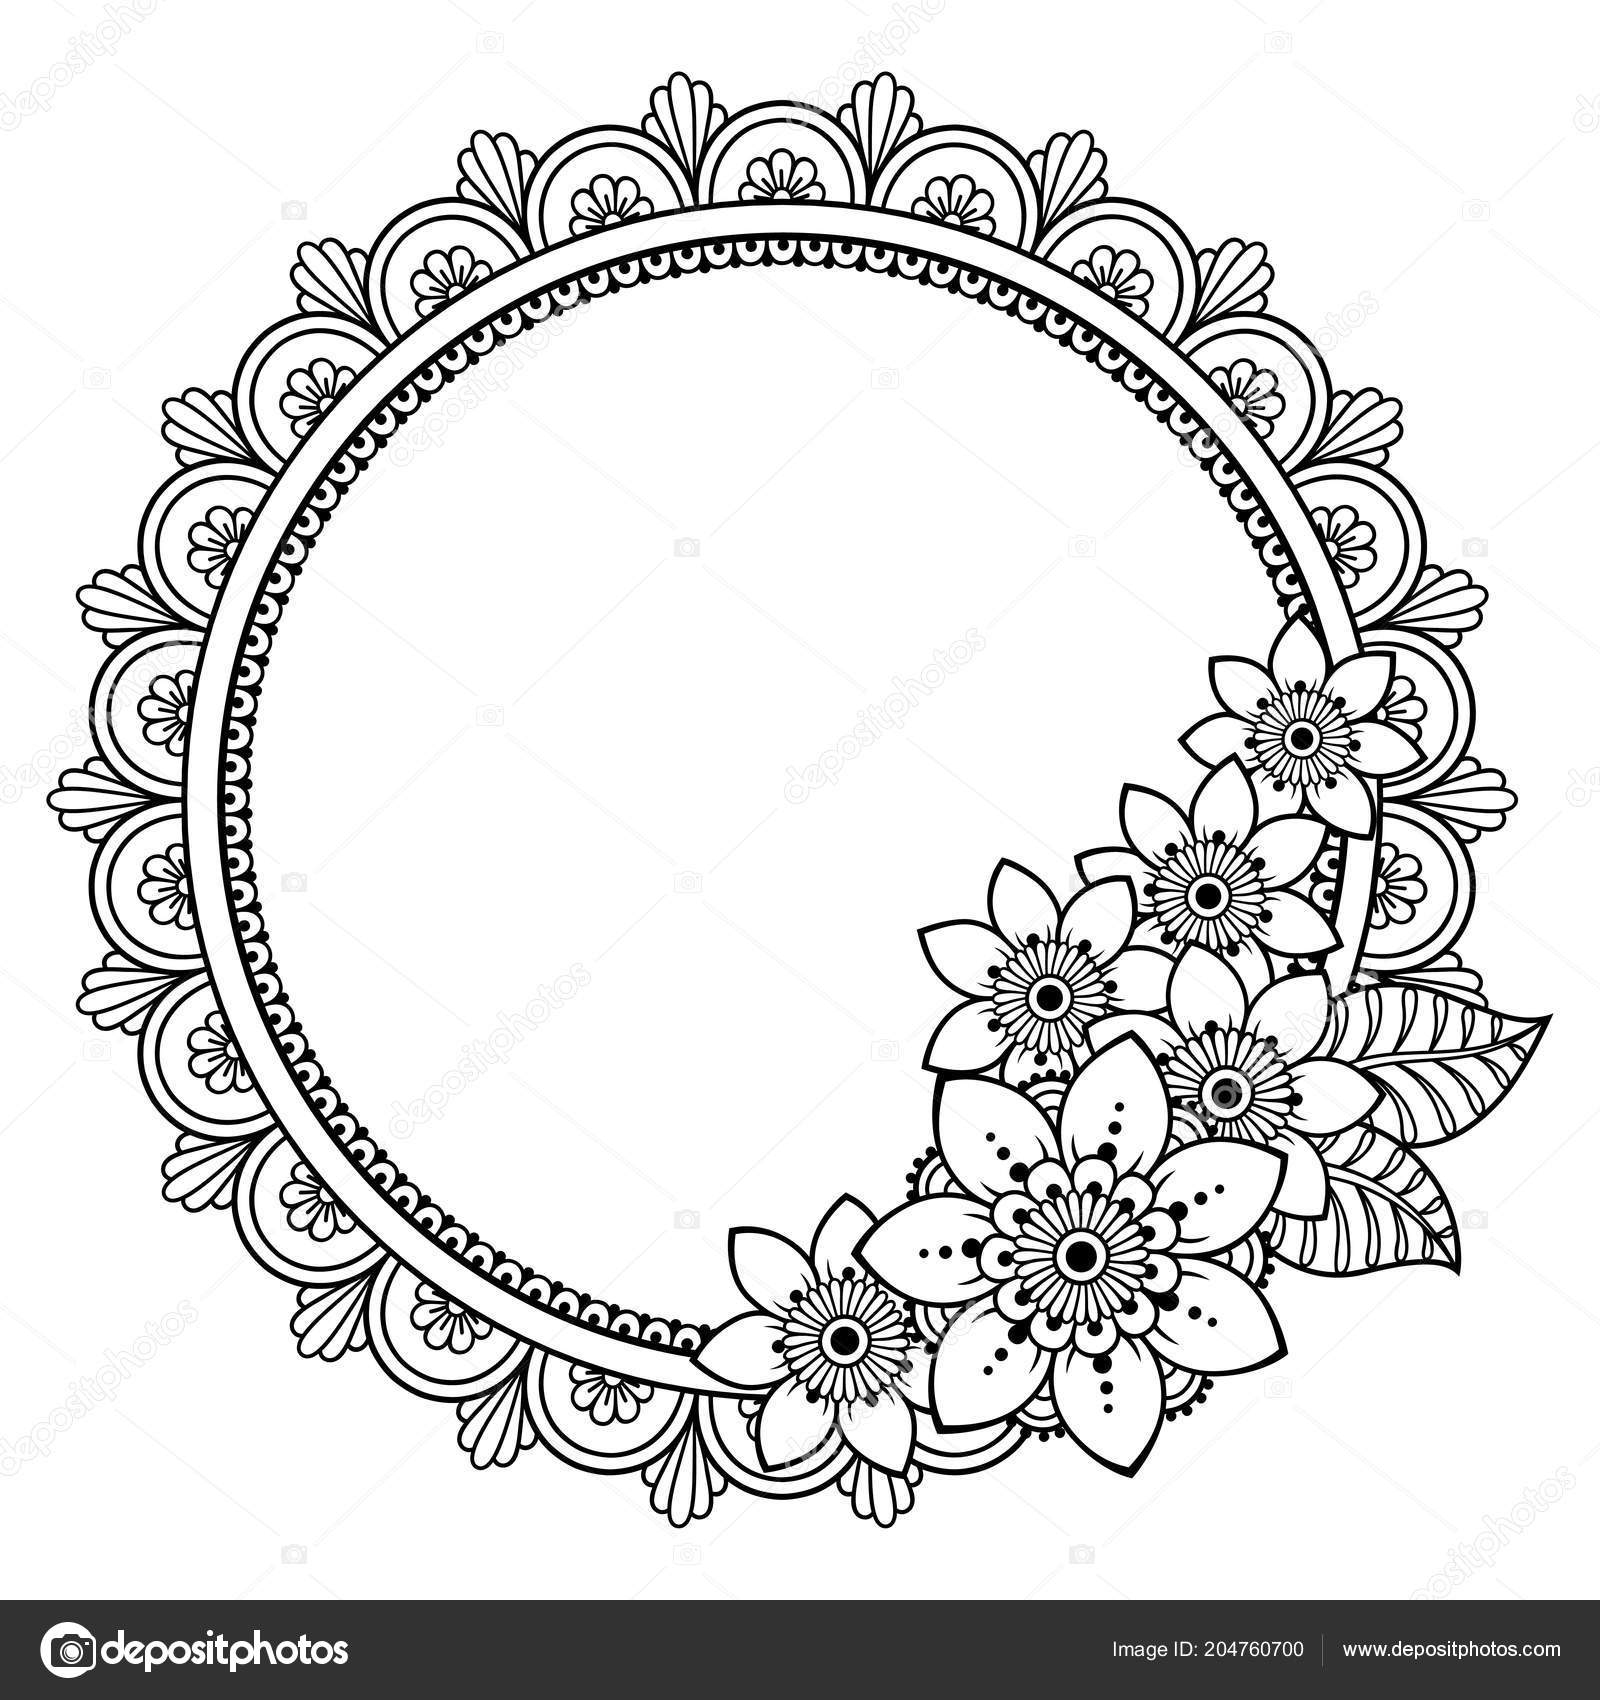 61ad9879f Circular pattern in form of mandala for Henna, Mehndi, tattoo, decoration.  Decorative frame with flower ornament in ethnic oriental style.